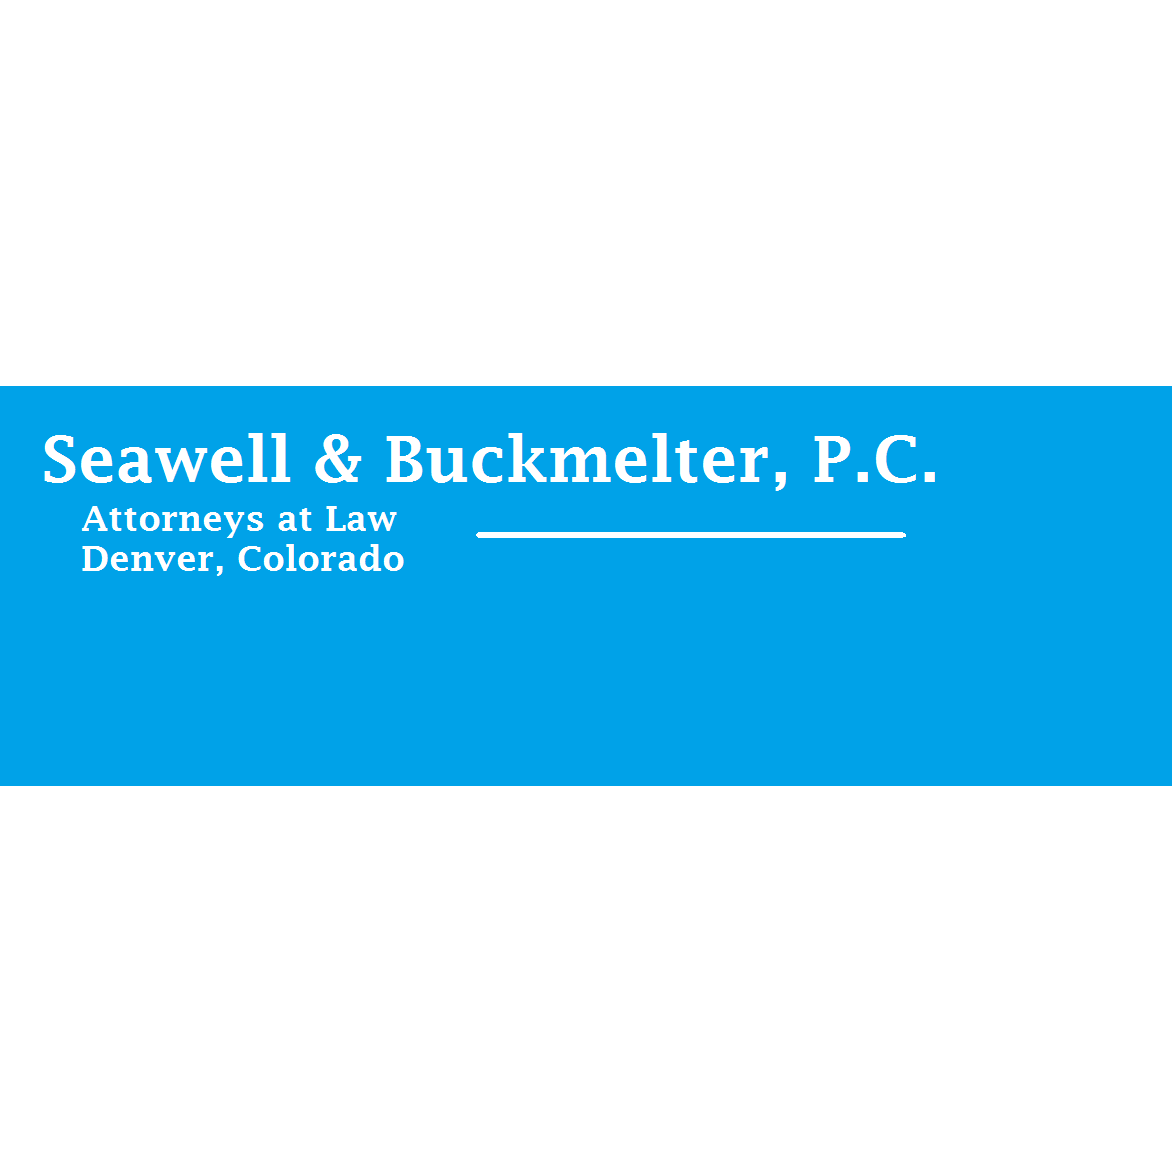 Seawell & Buckmelter, P.C., Attorneys at Law